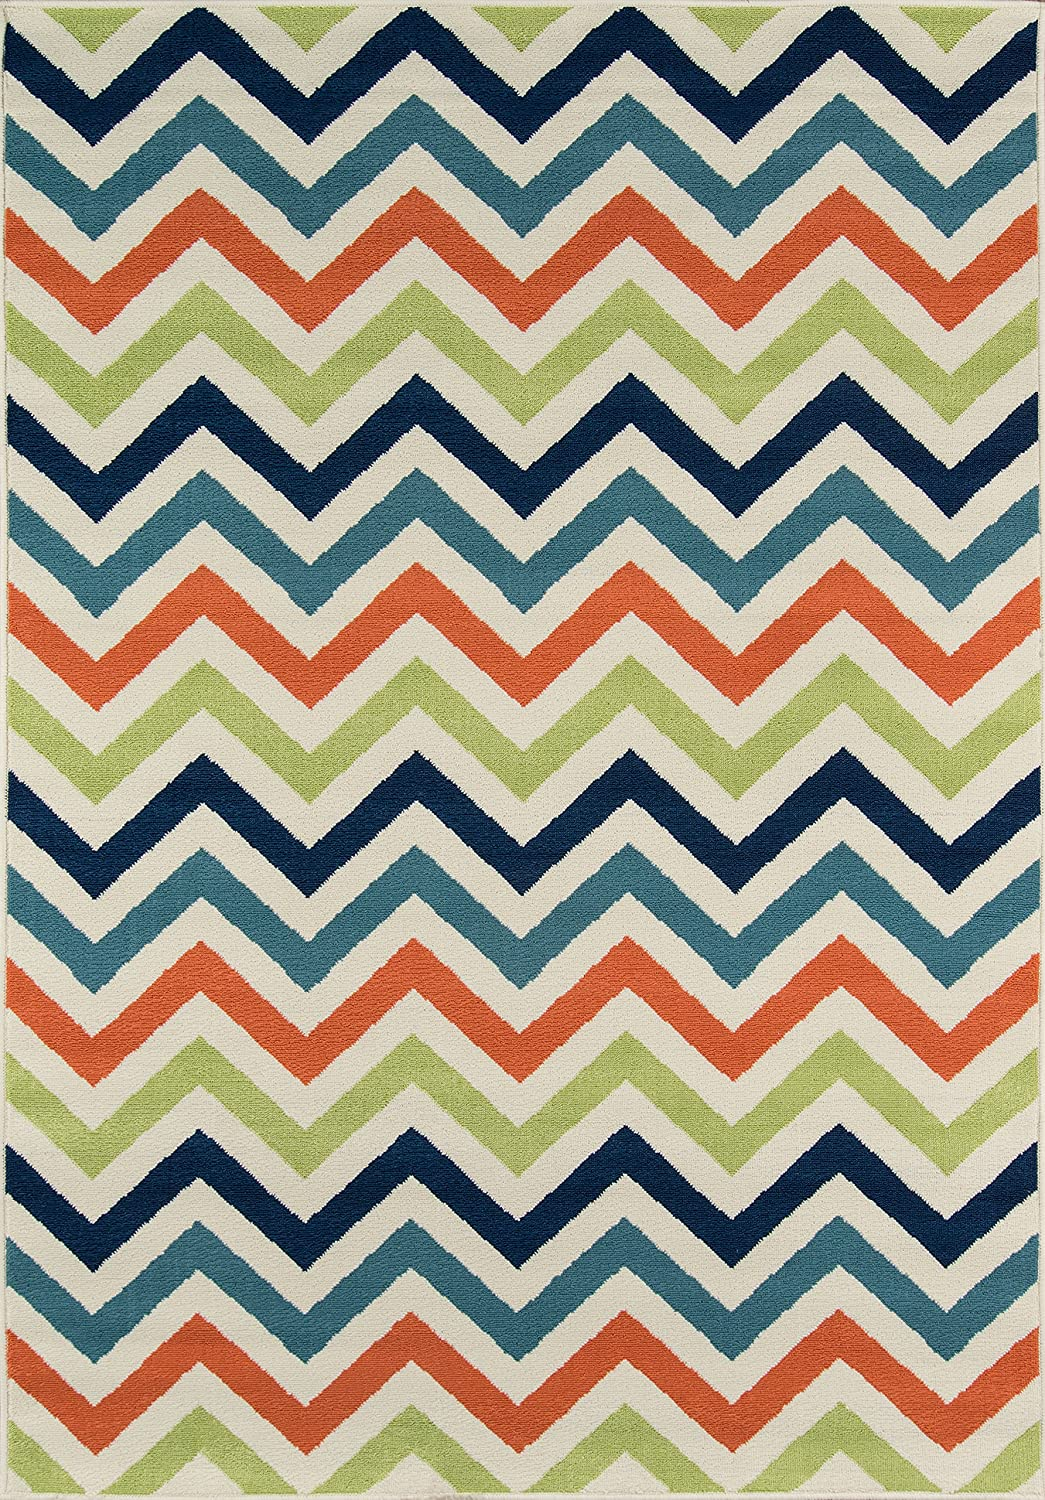 18 x 37 Baja Collection Contemporary Indoor /& Outdoor Area Rug UV protected /& Fade Resistant Navy Blue 1/'8 x 3/'7 Inc DROPSHIP Easy to Clean Momeni Rugs BAJA0BAJ-9NVY1837